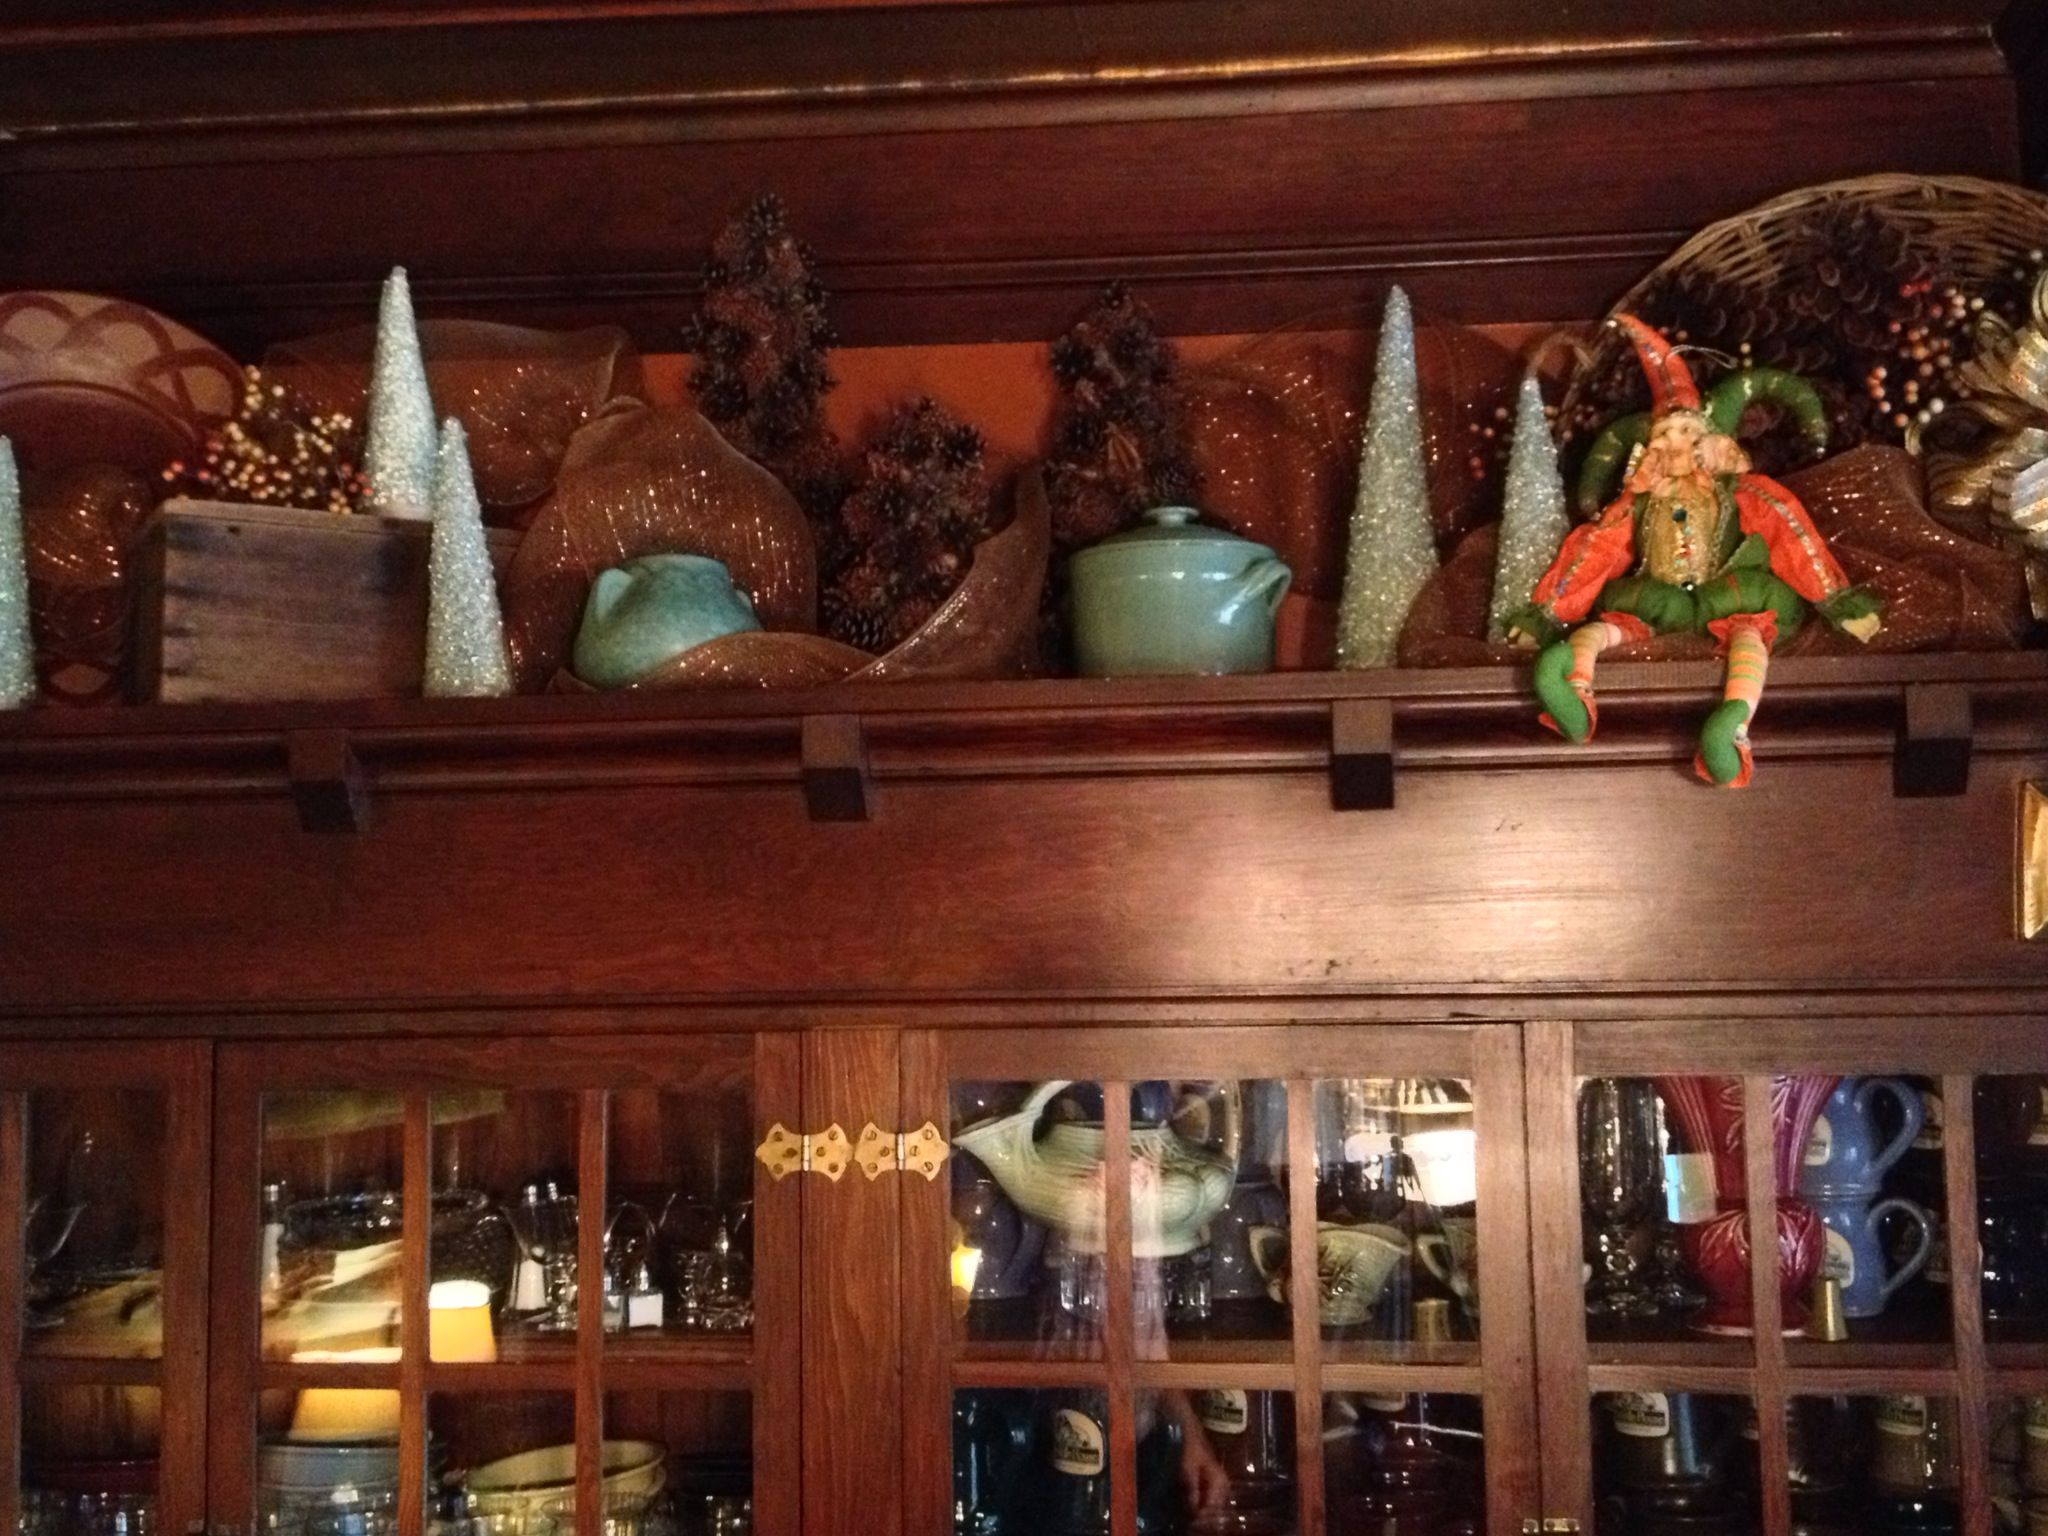 Holiday decorations on top of the built in buffet in the